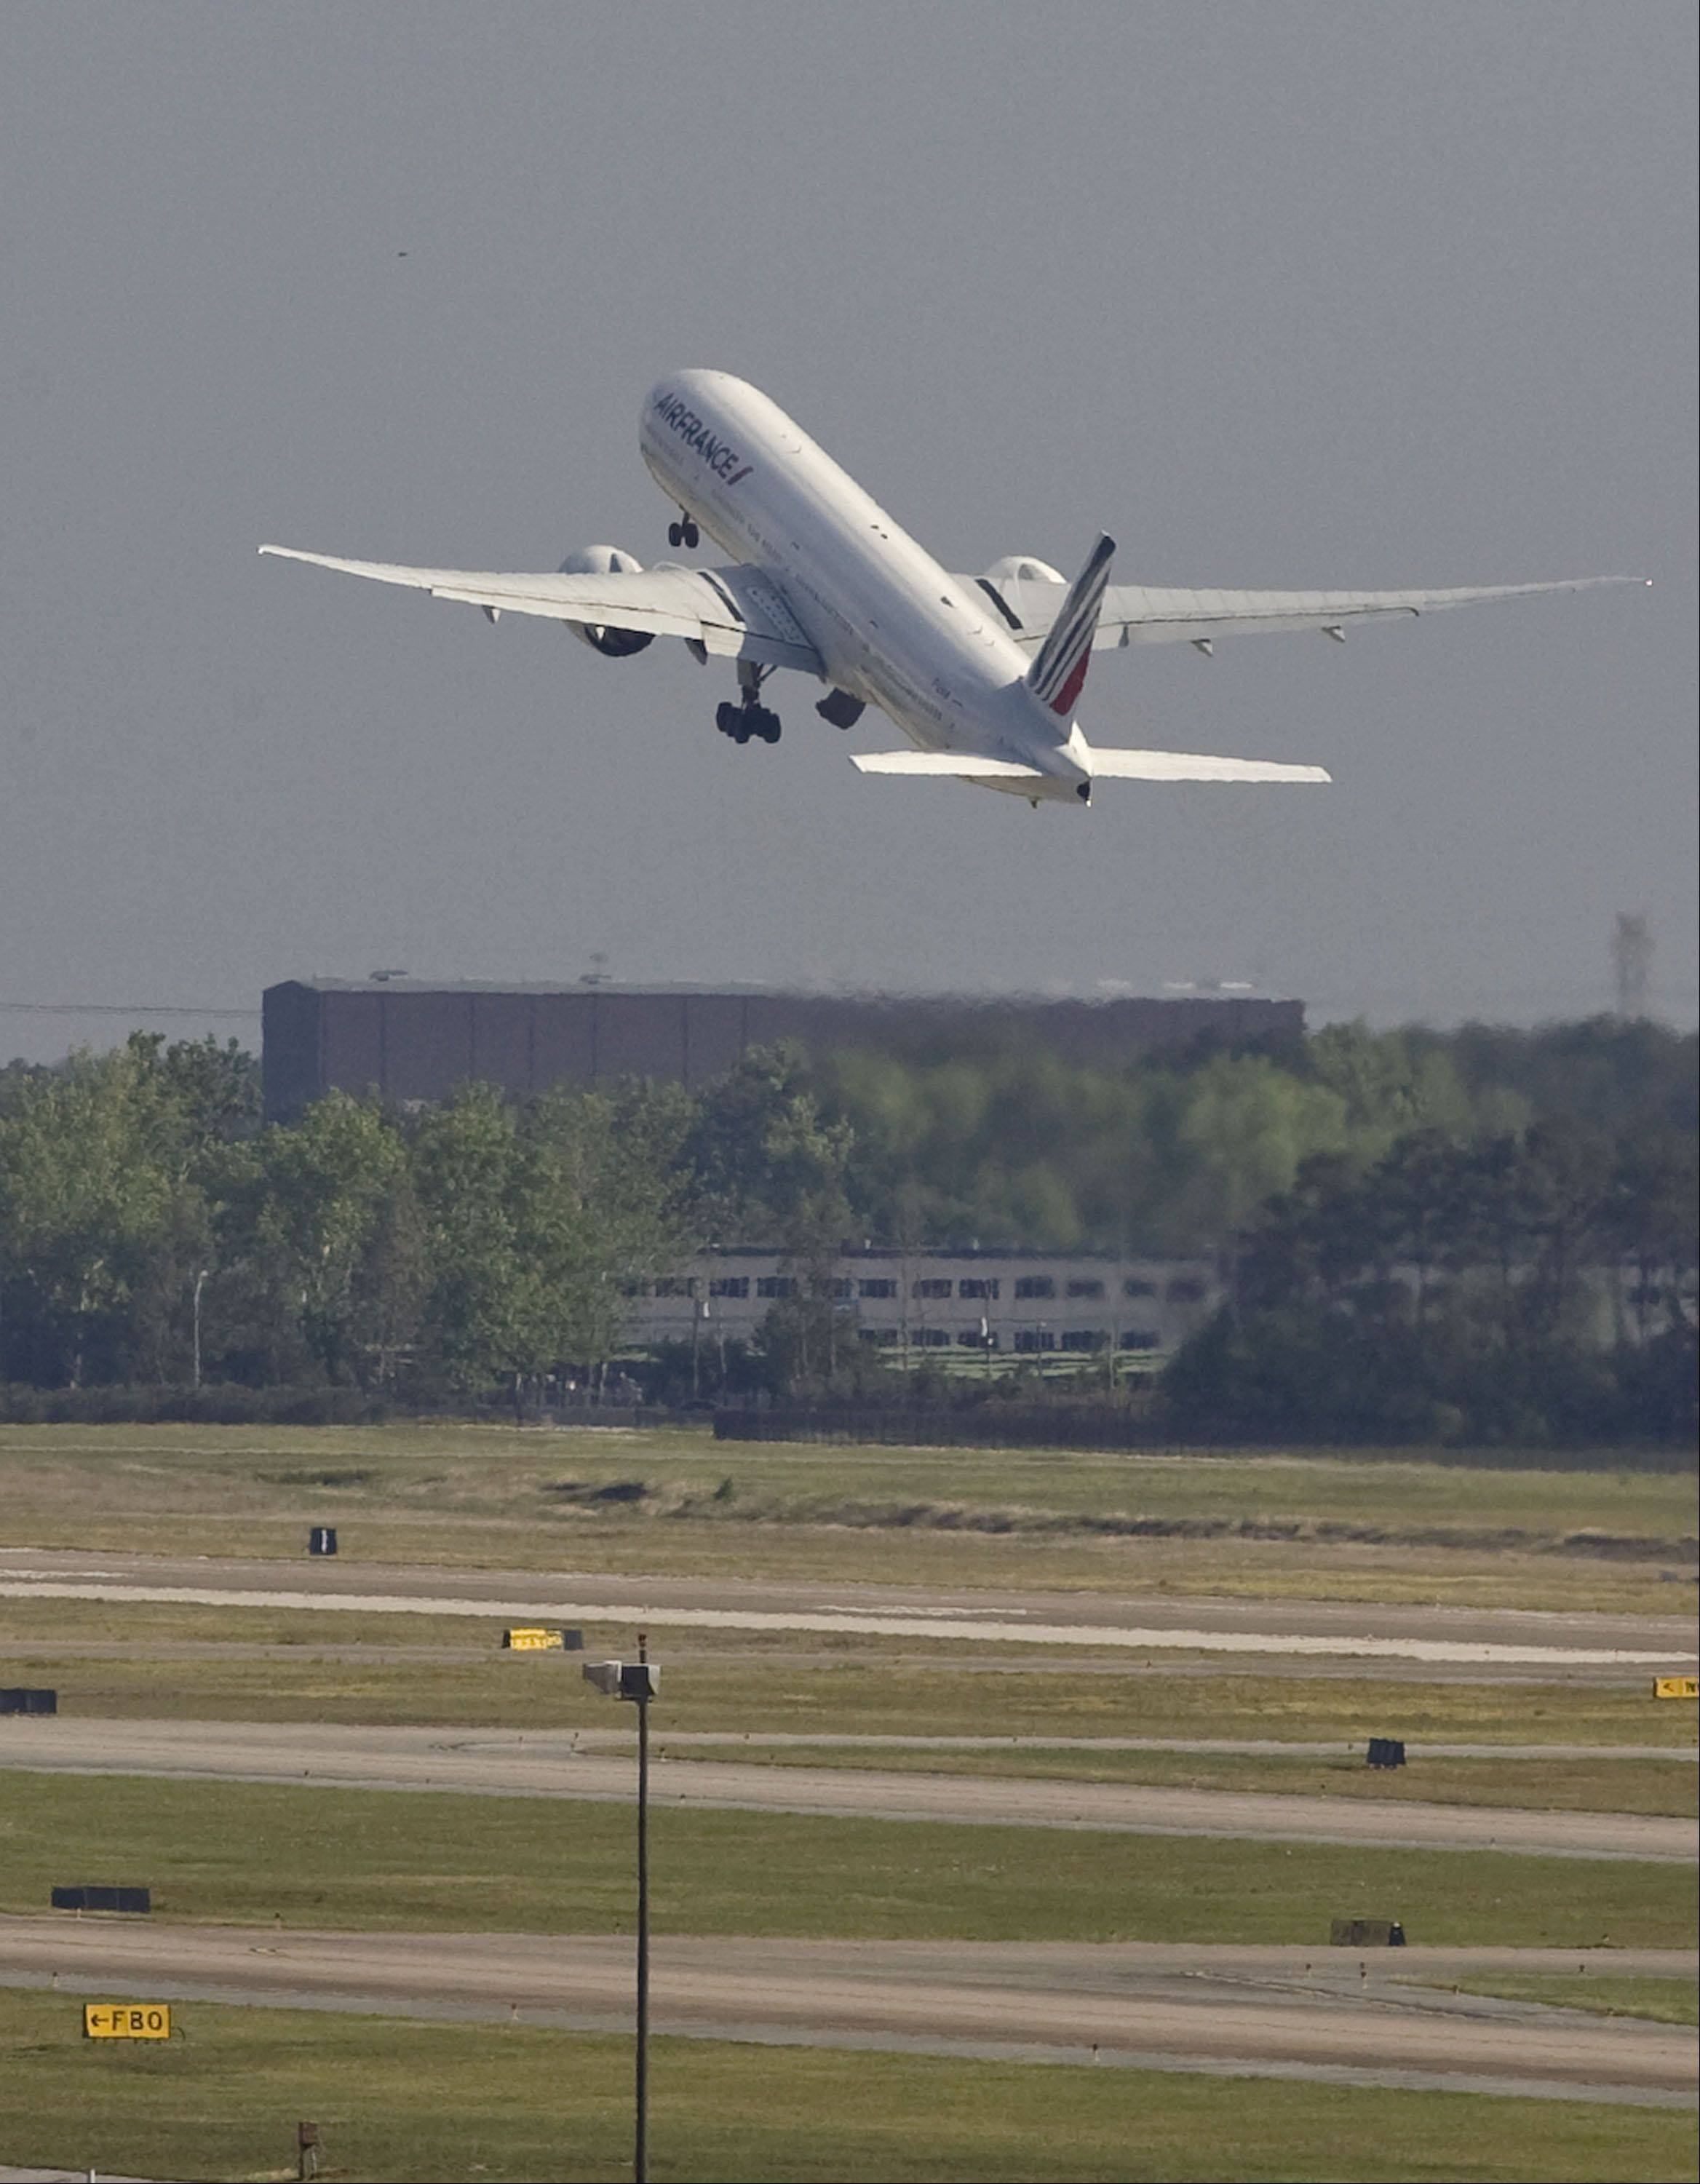 An Air France Boeing 777 takes off from Houston's Bush Intercontinental Airport on its way to Paris, France.